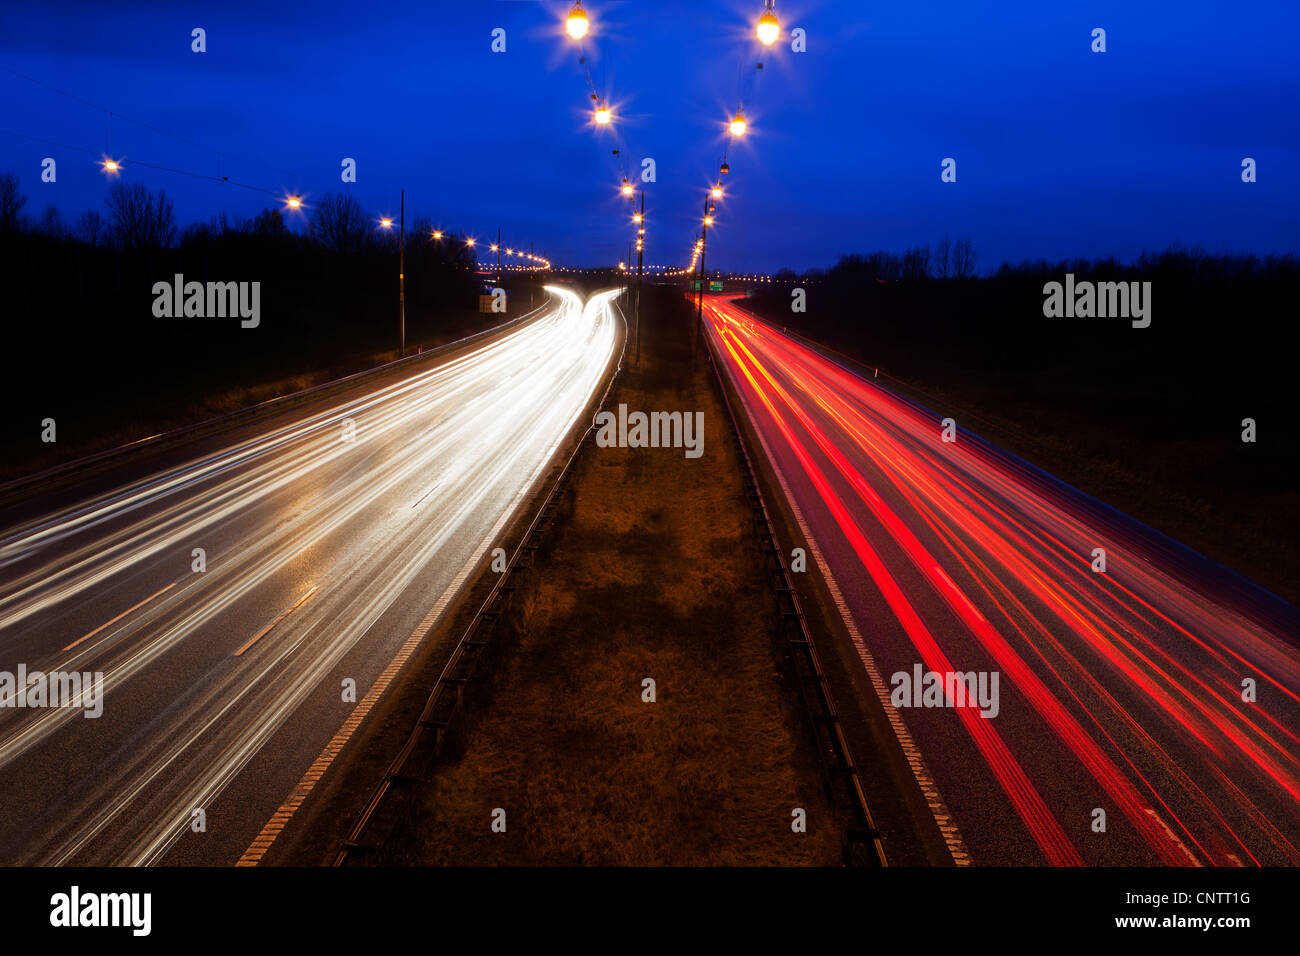 Time-lapse view of traffic at night - Stock Image